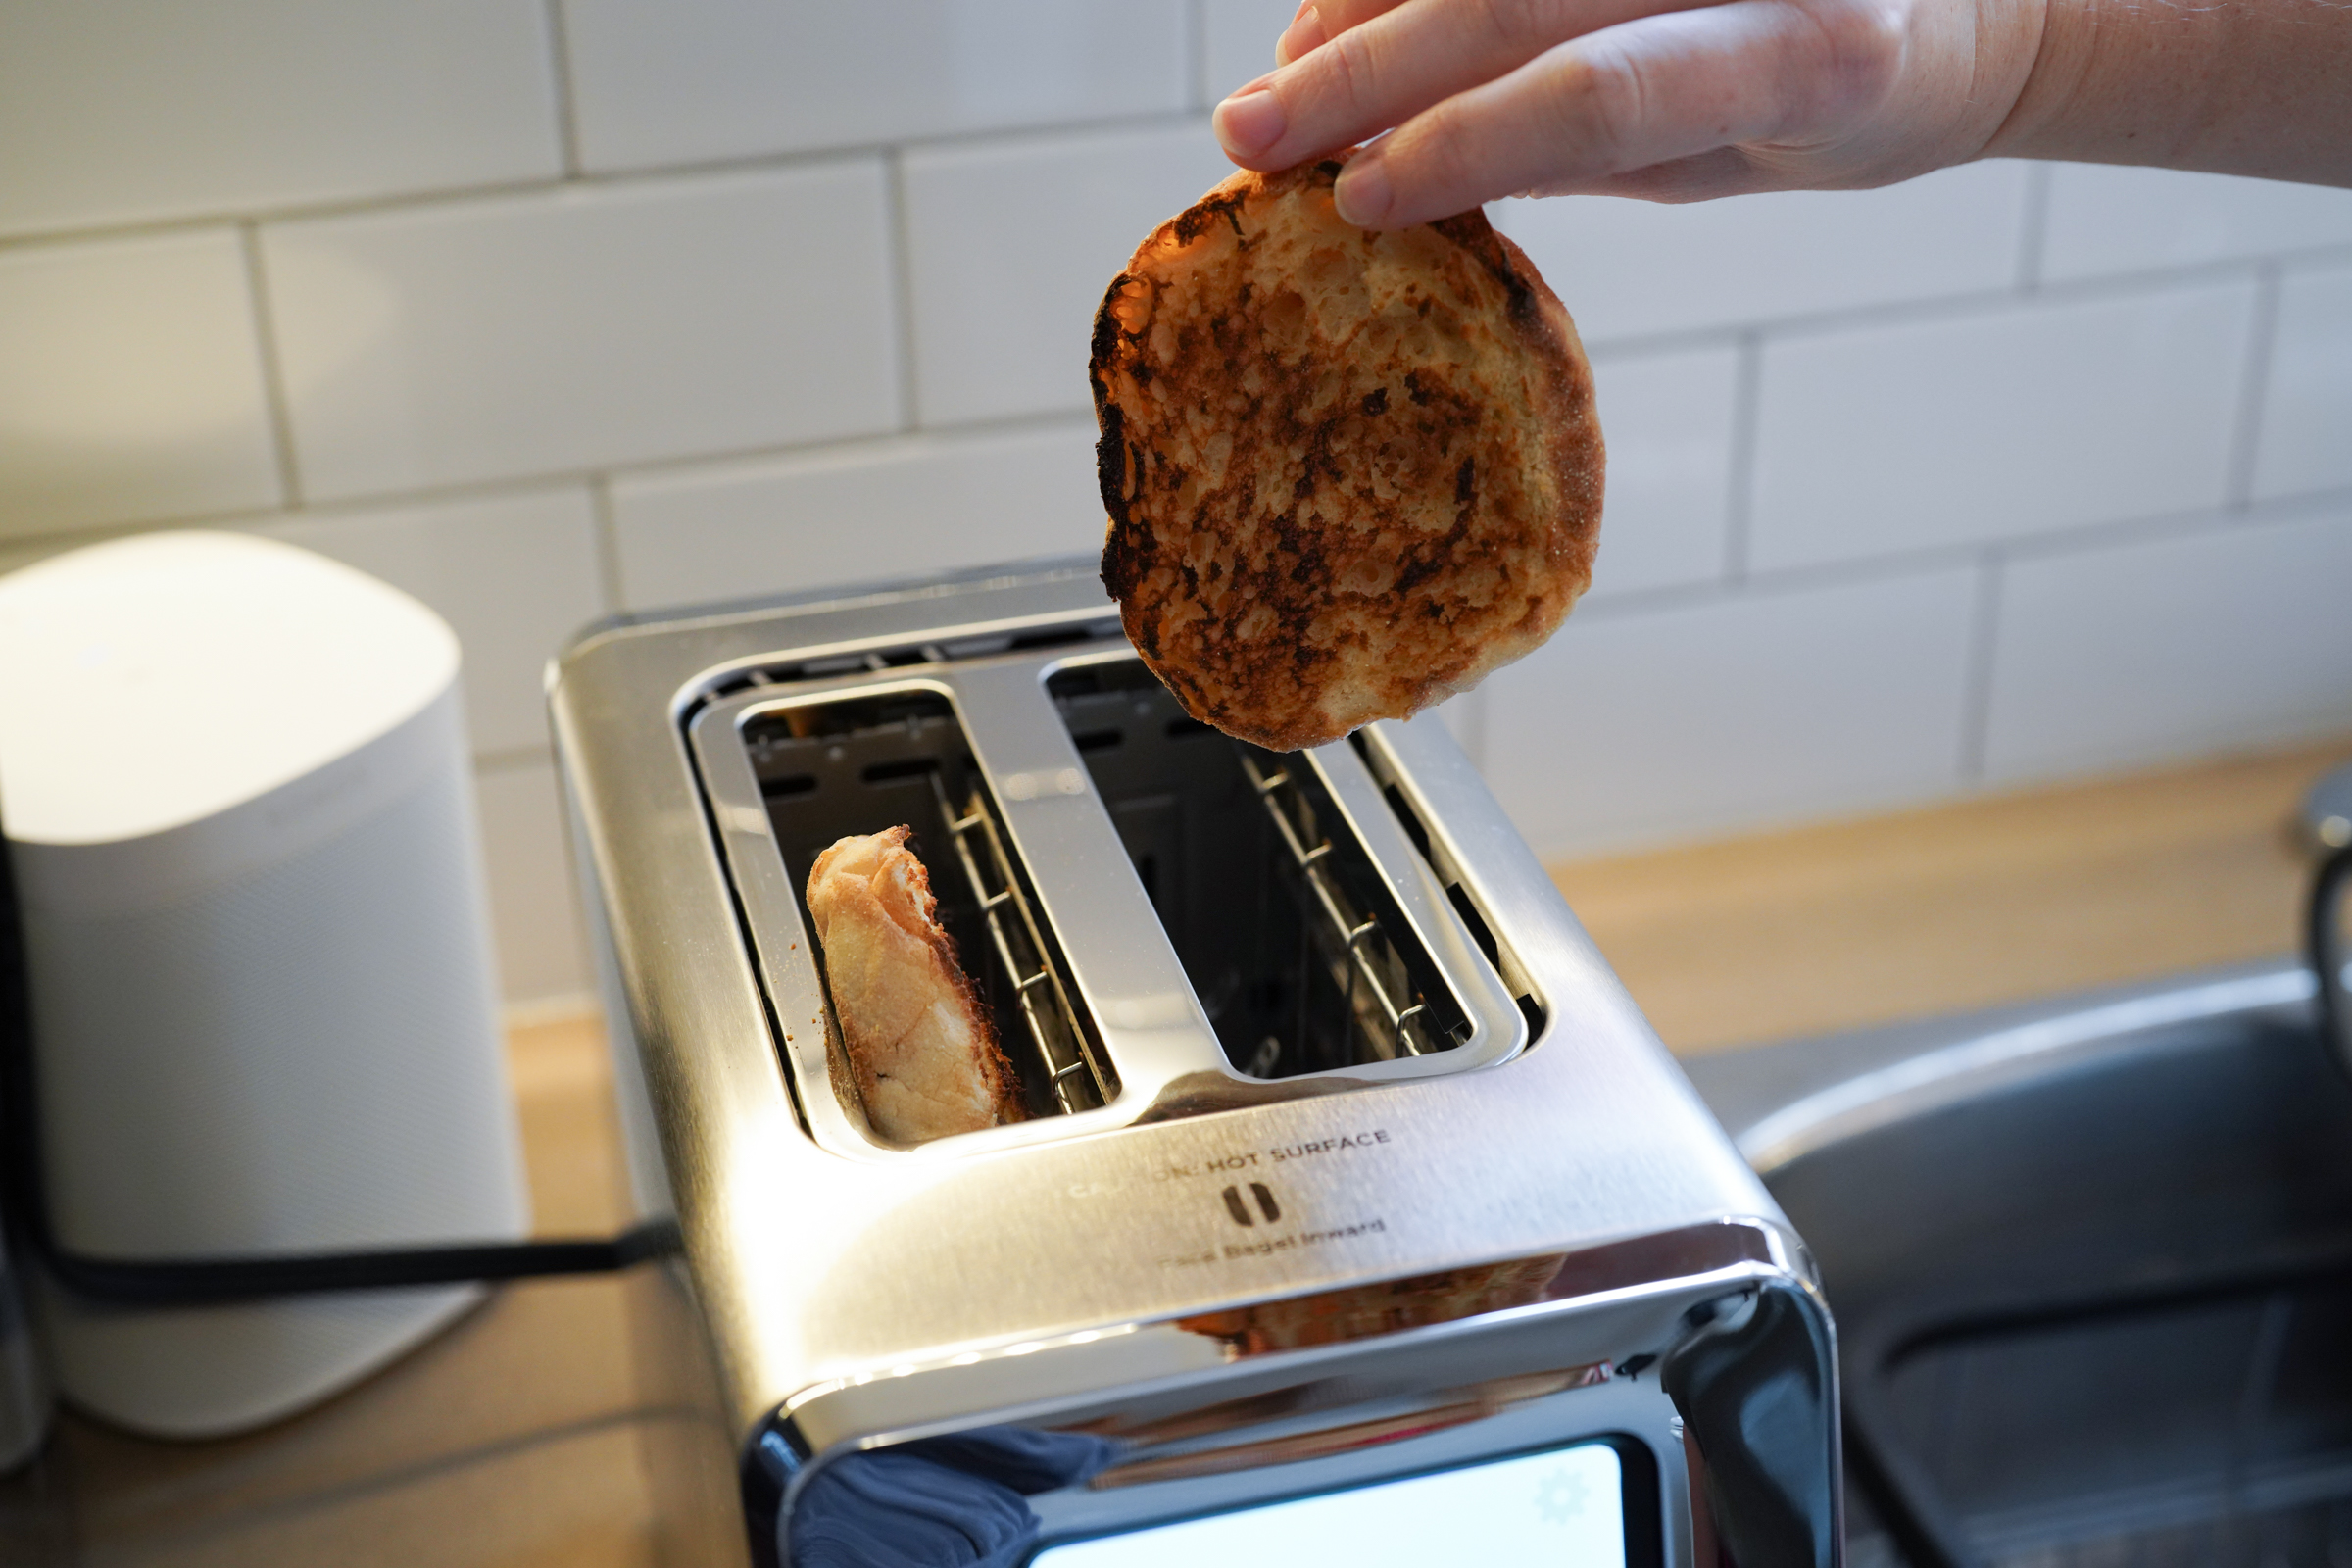 Revolution Cooking's R180 Smart Toaster delivers smarter, faster toasting — for a price – TechCrunch 4